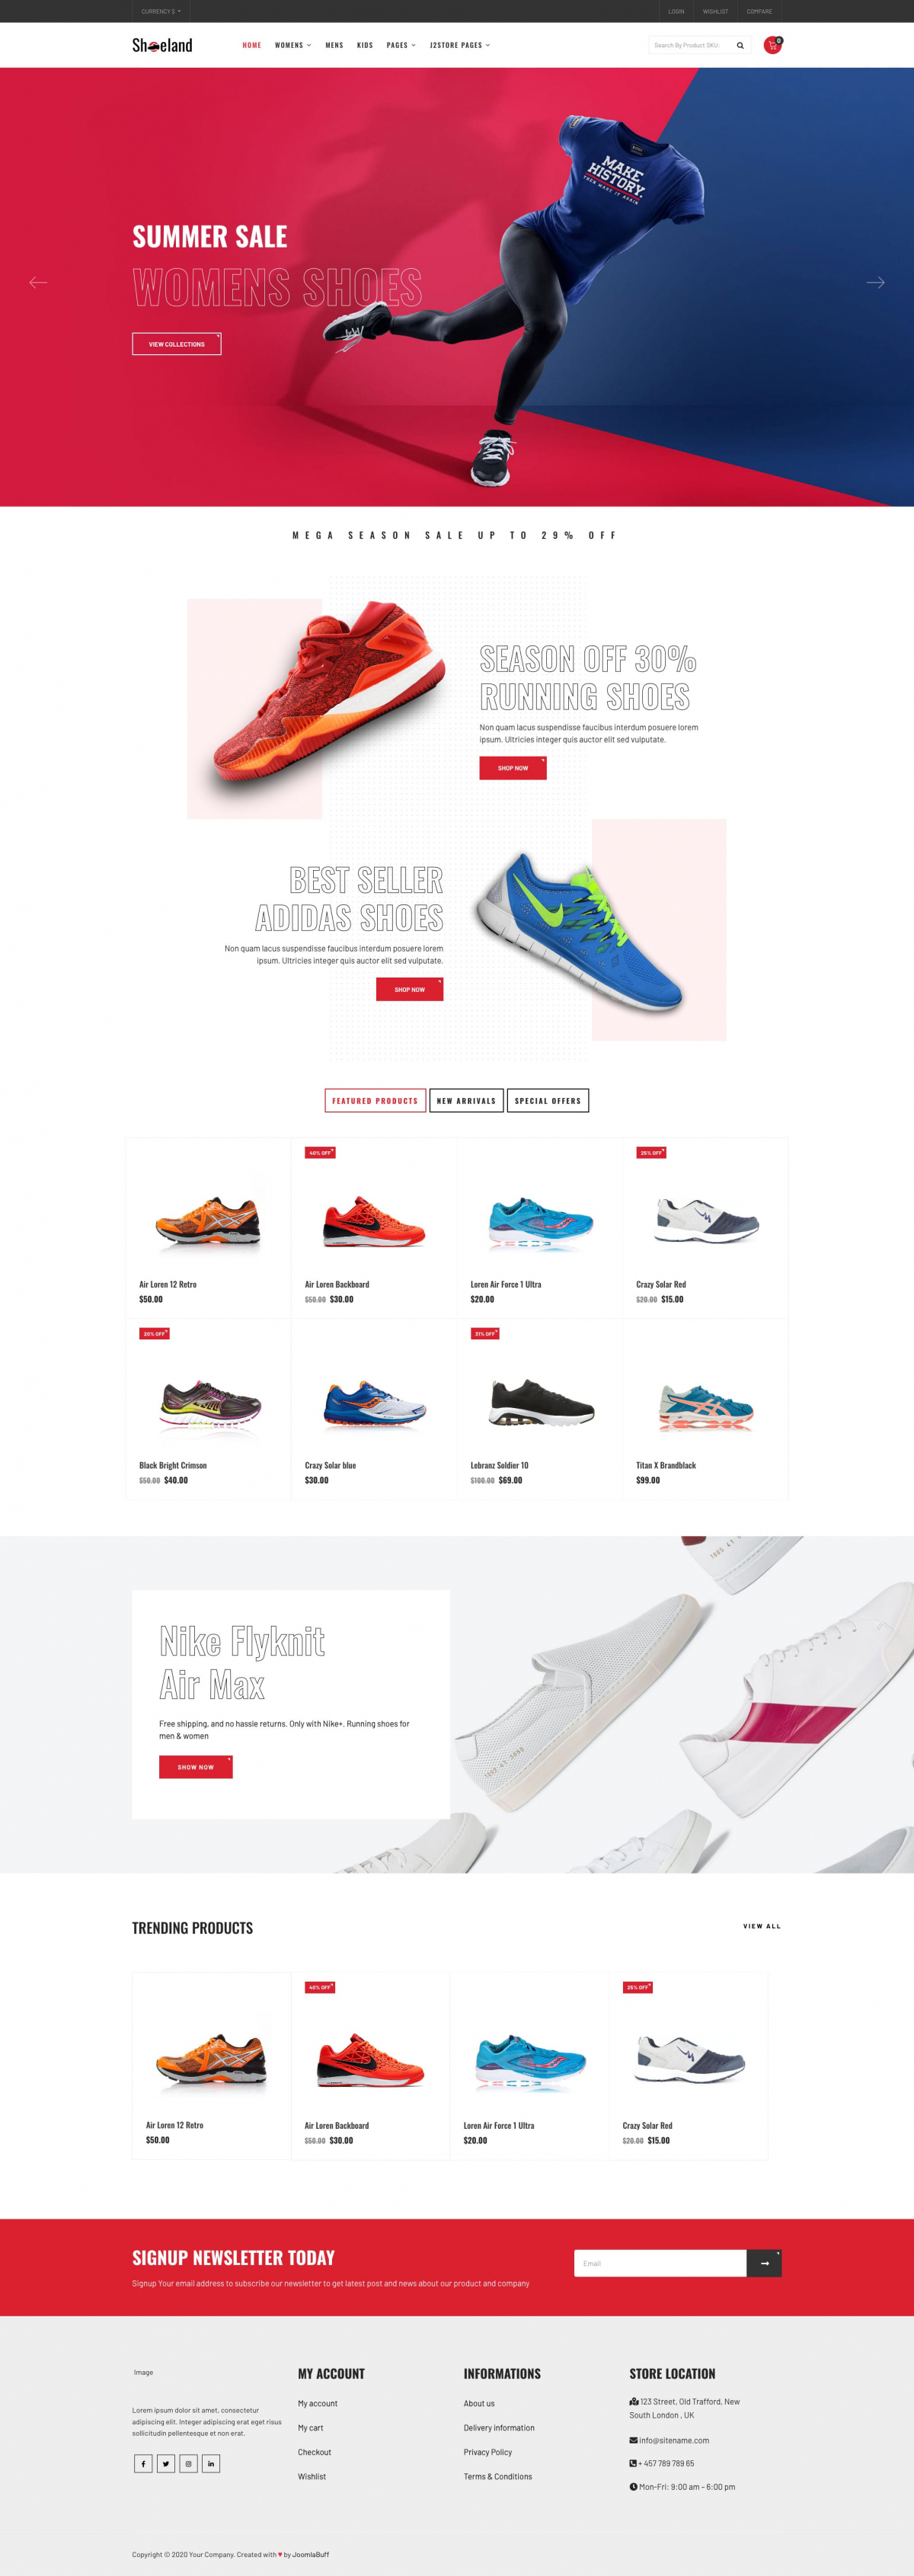 Shoeland - Footwear J2Store eCommerce Joomla Theme